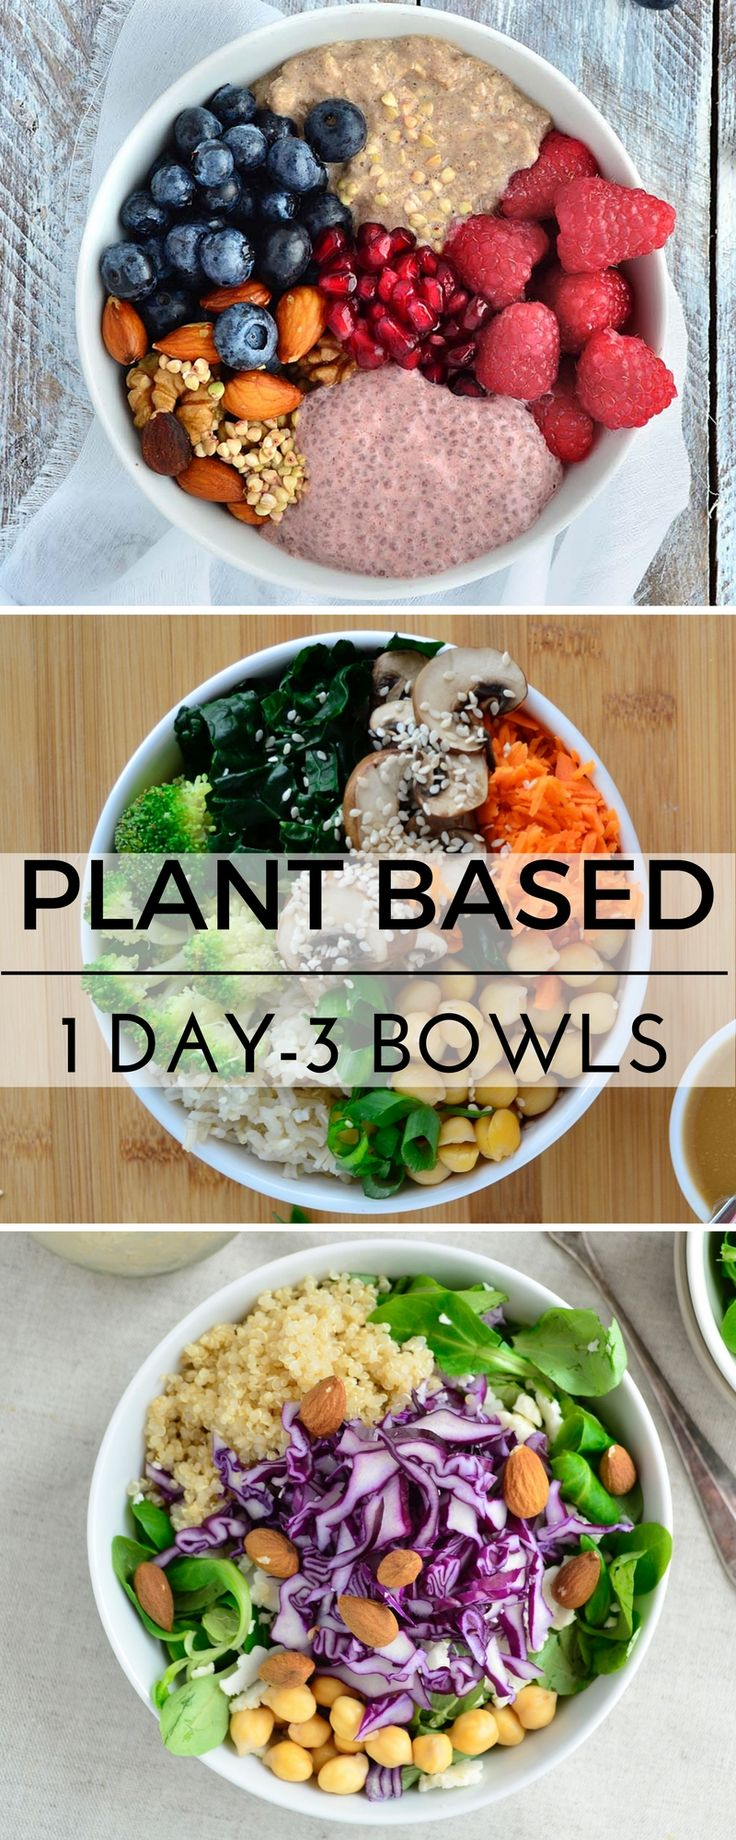 Best 25 plant based recipes ideas on pinterest vegan recipes plant based recipes vegan recipes healthy gluten free vegan meal ideas forumfinder Image collections